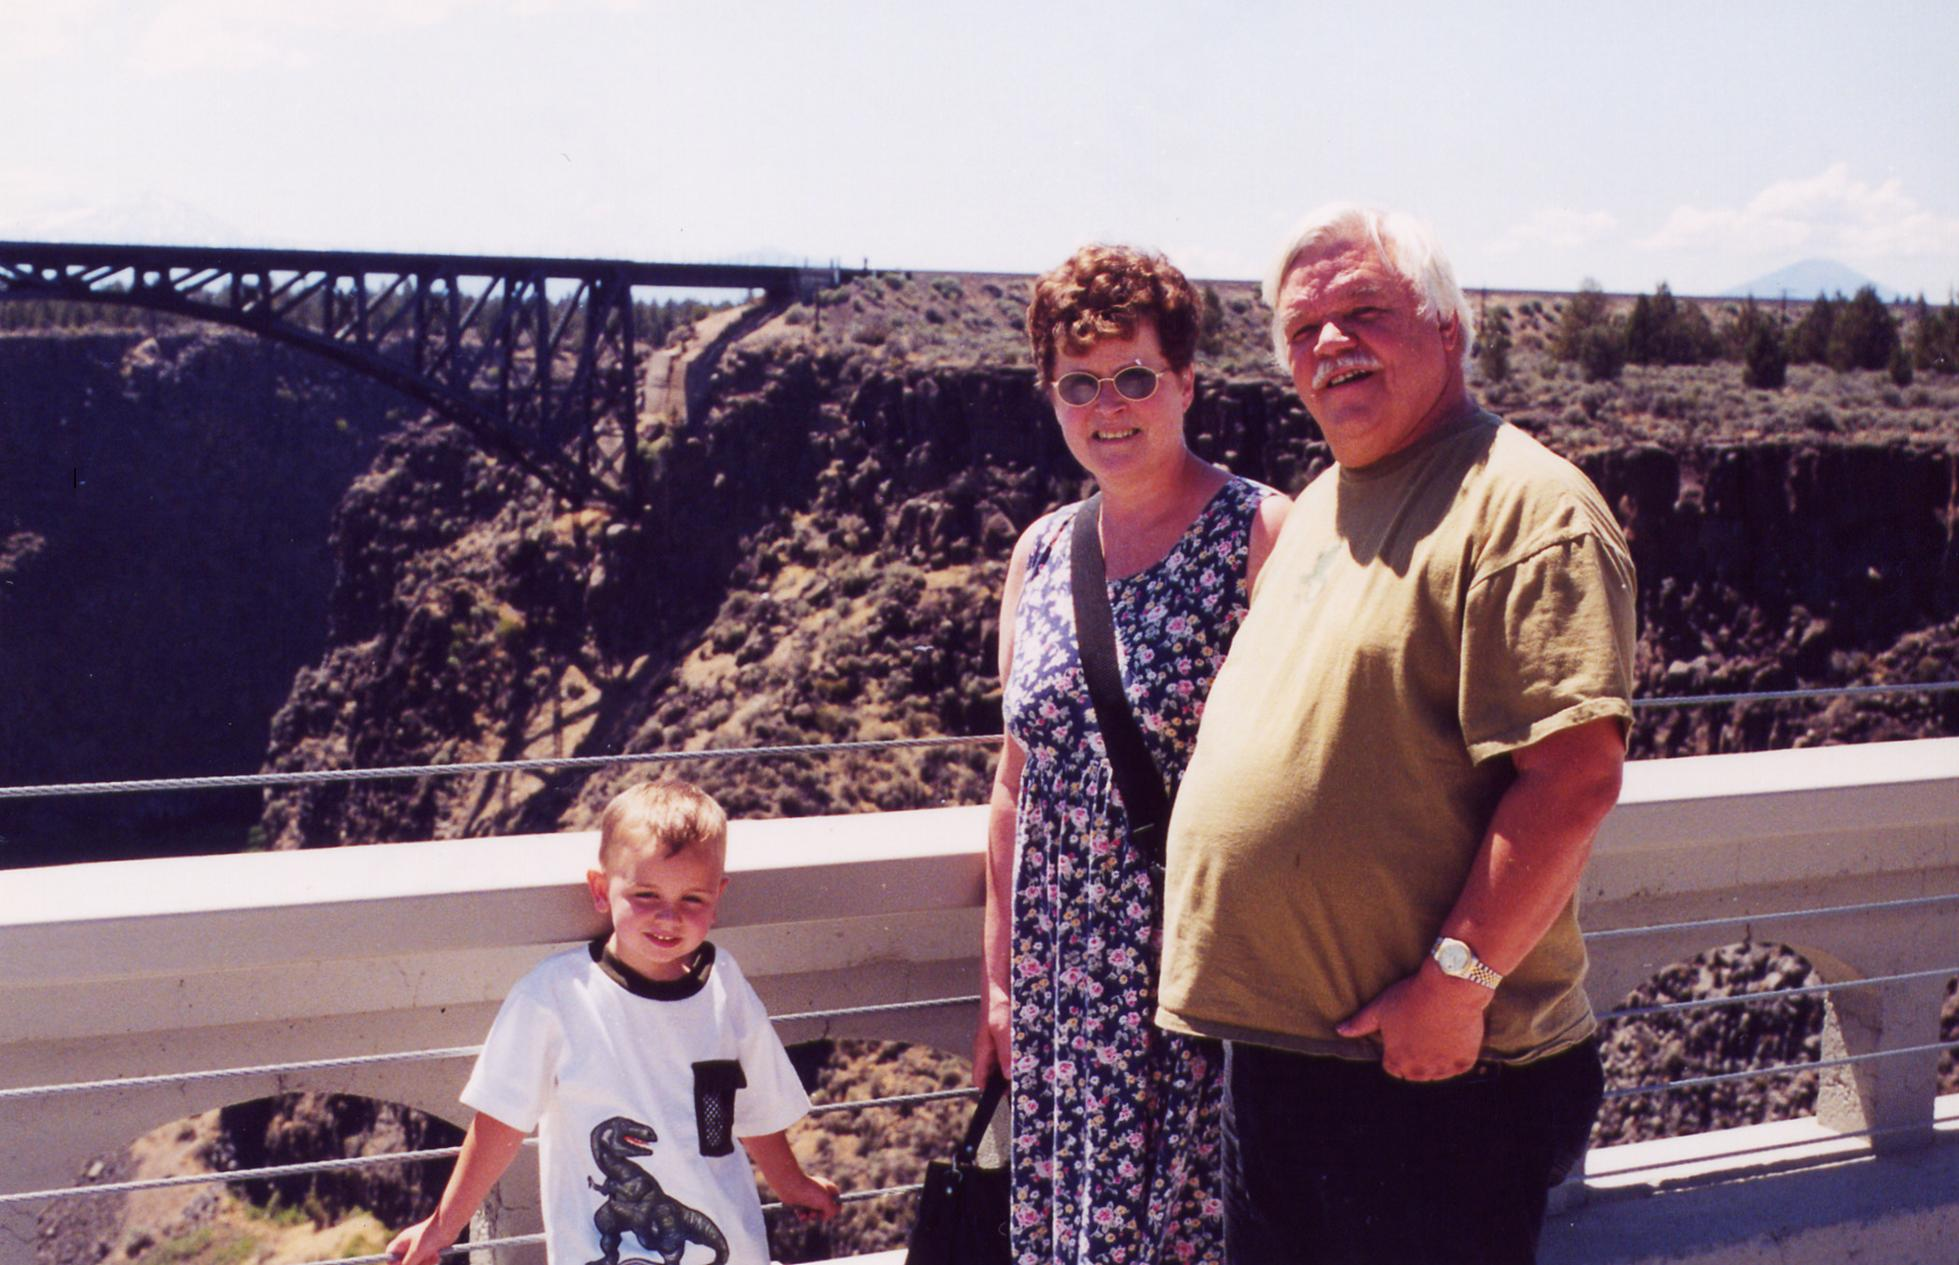 Paul on Right. First Wife Darlene, and Bobie on the New Crooked River Bridge, with old Bridge in the Background. July 2001